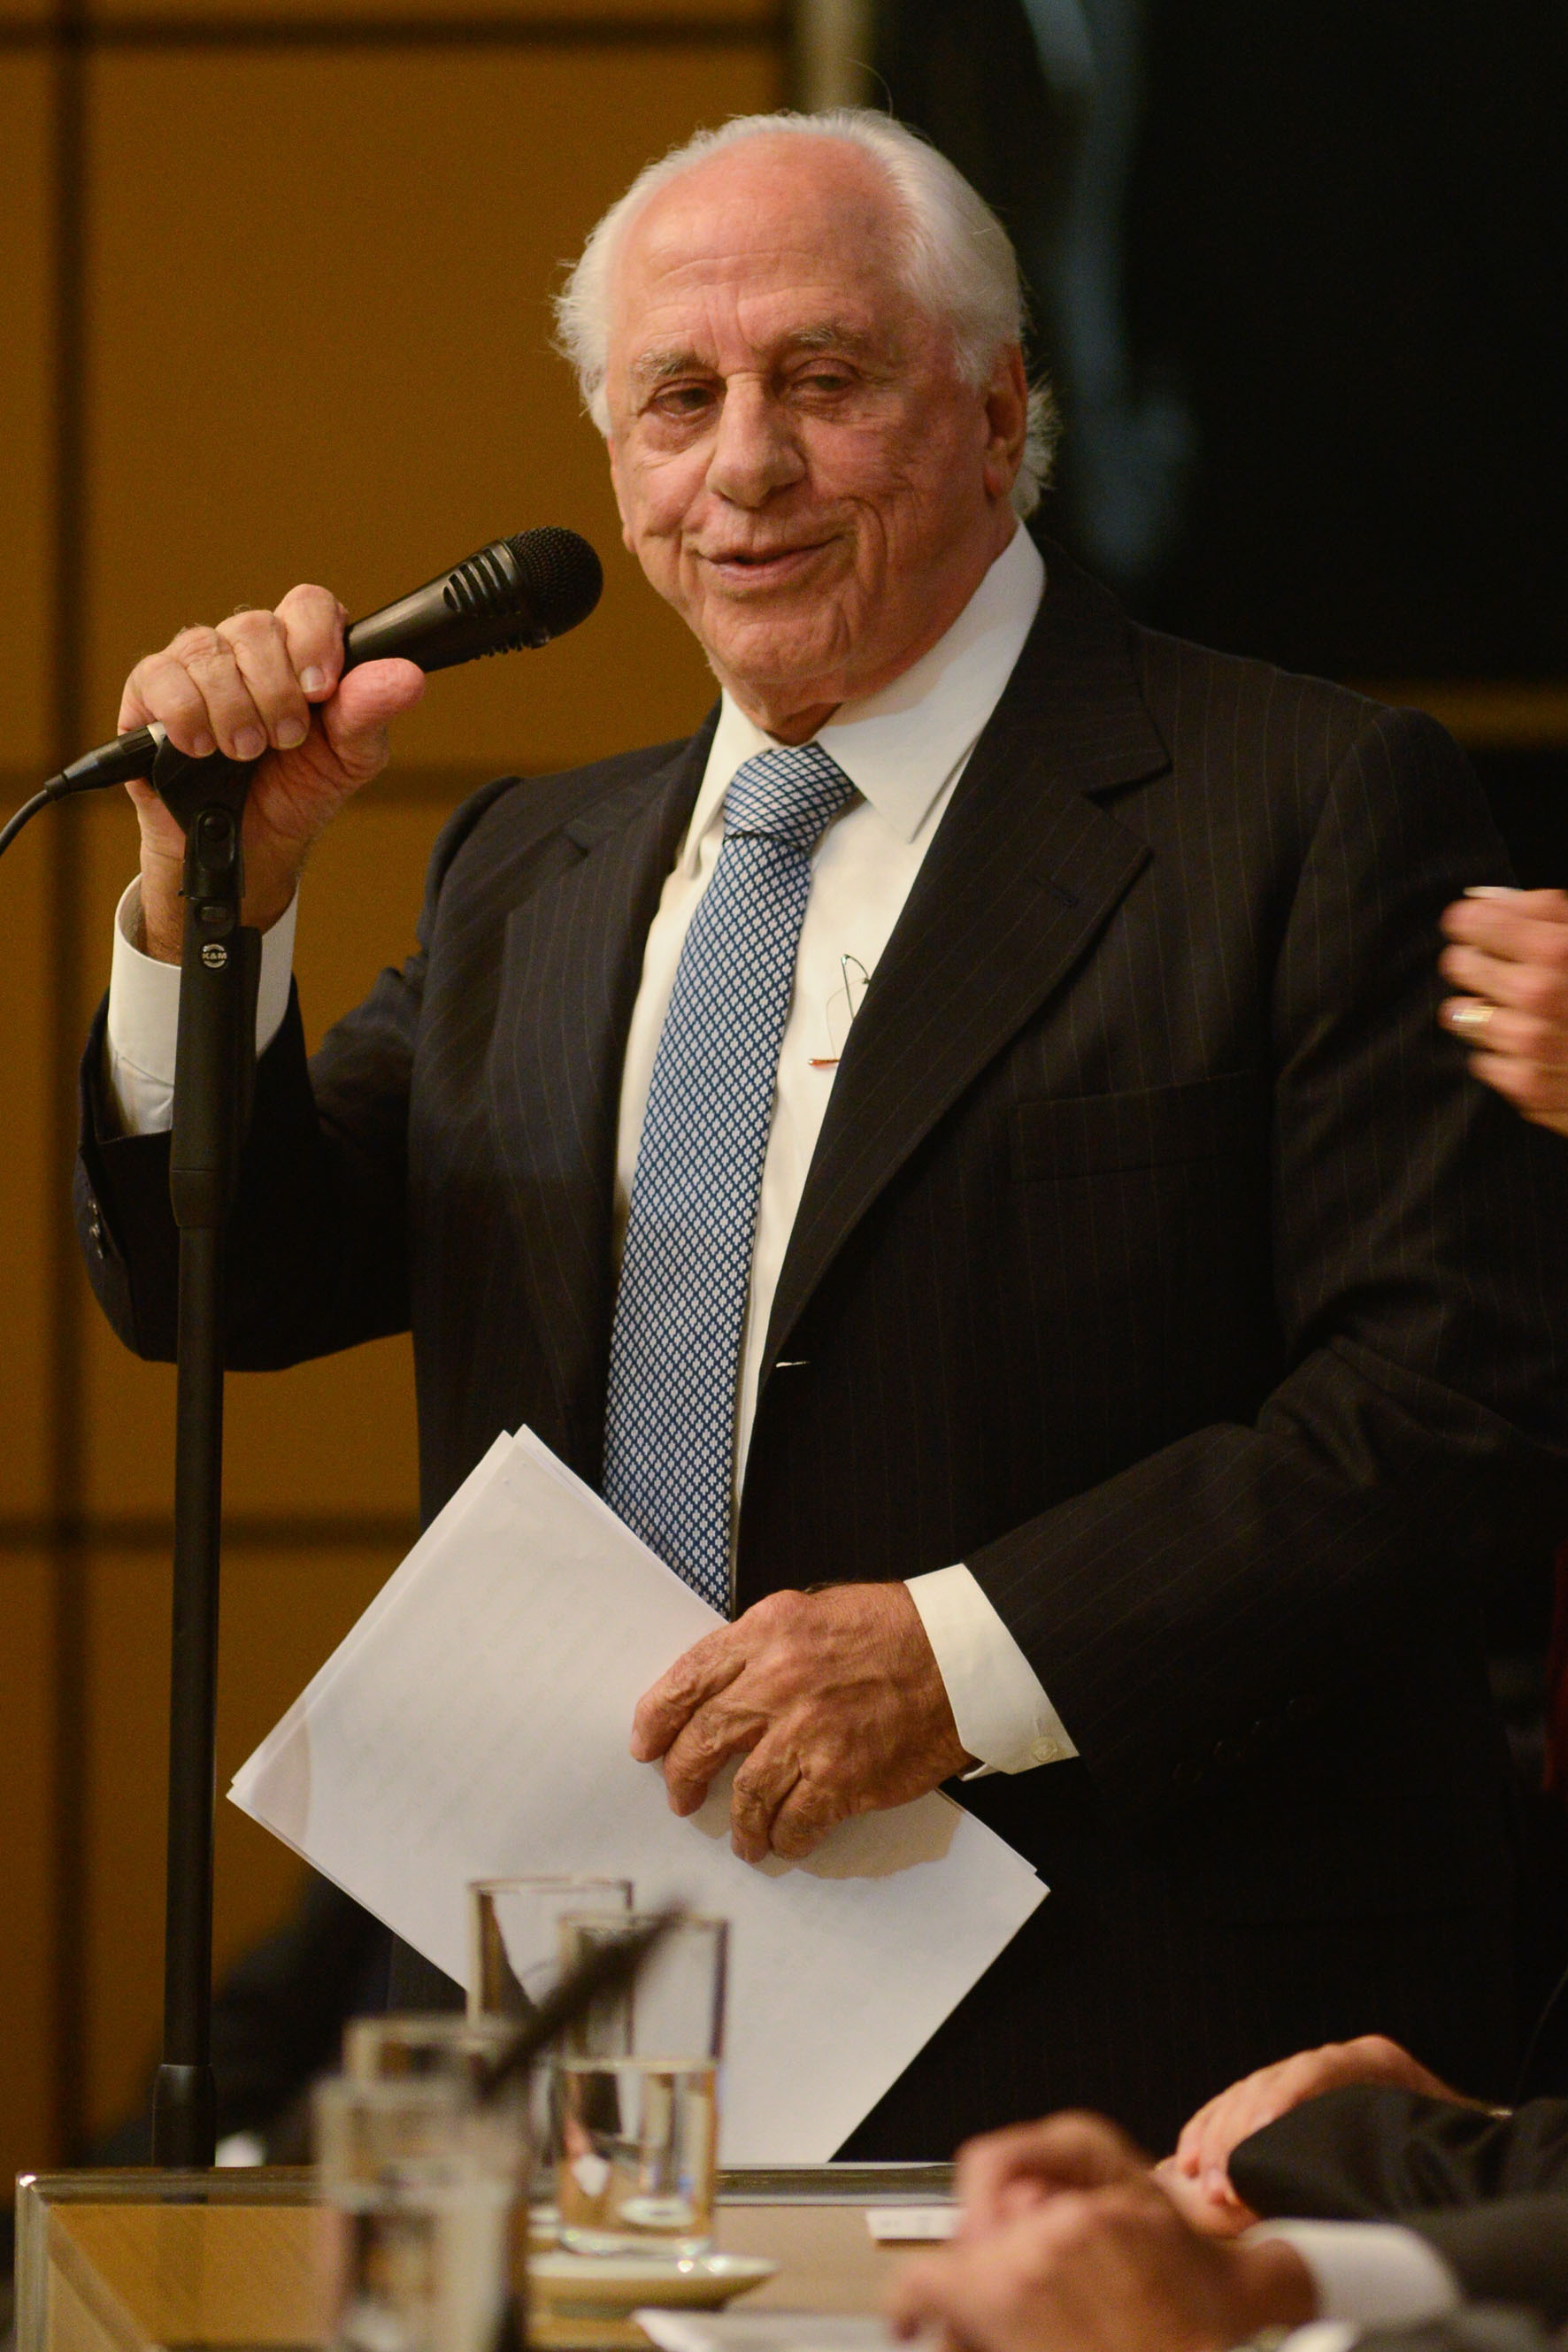 José Yunes<a style='float:right' href='https://www3.al.sp.gov.br/repositorio/noticia/N-06-2016/fg192080.jpg' target=_blank><img src='/_img/material-file-download-white.png' width='14px' alt='Clique para baixar a imagem'></a>